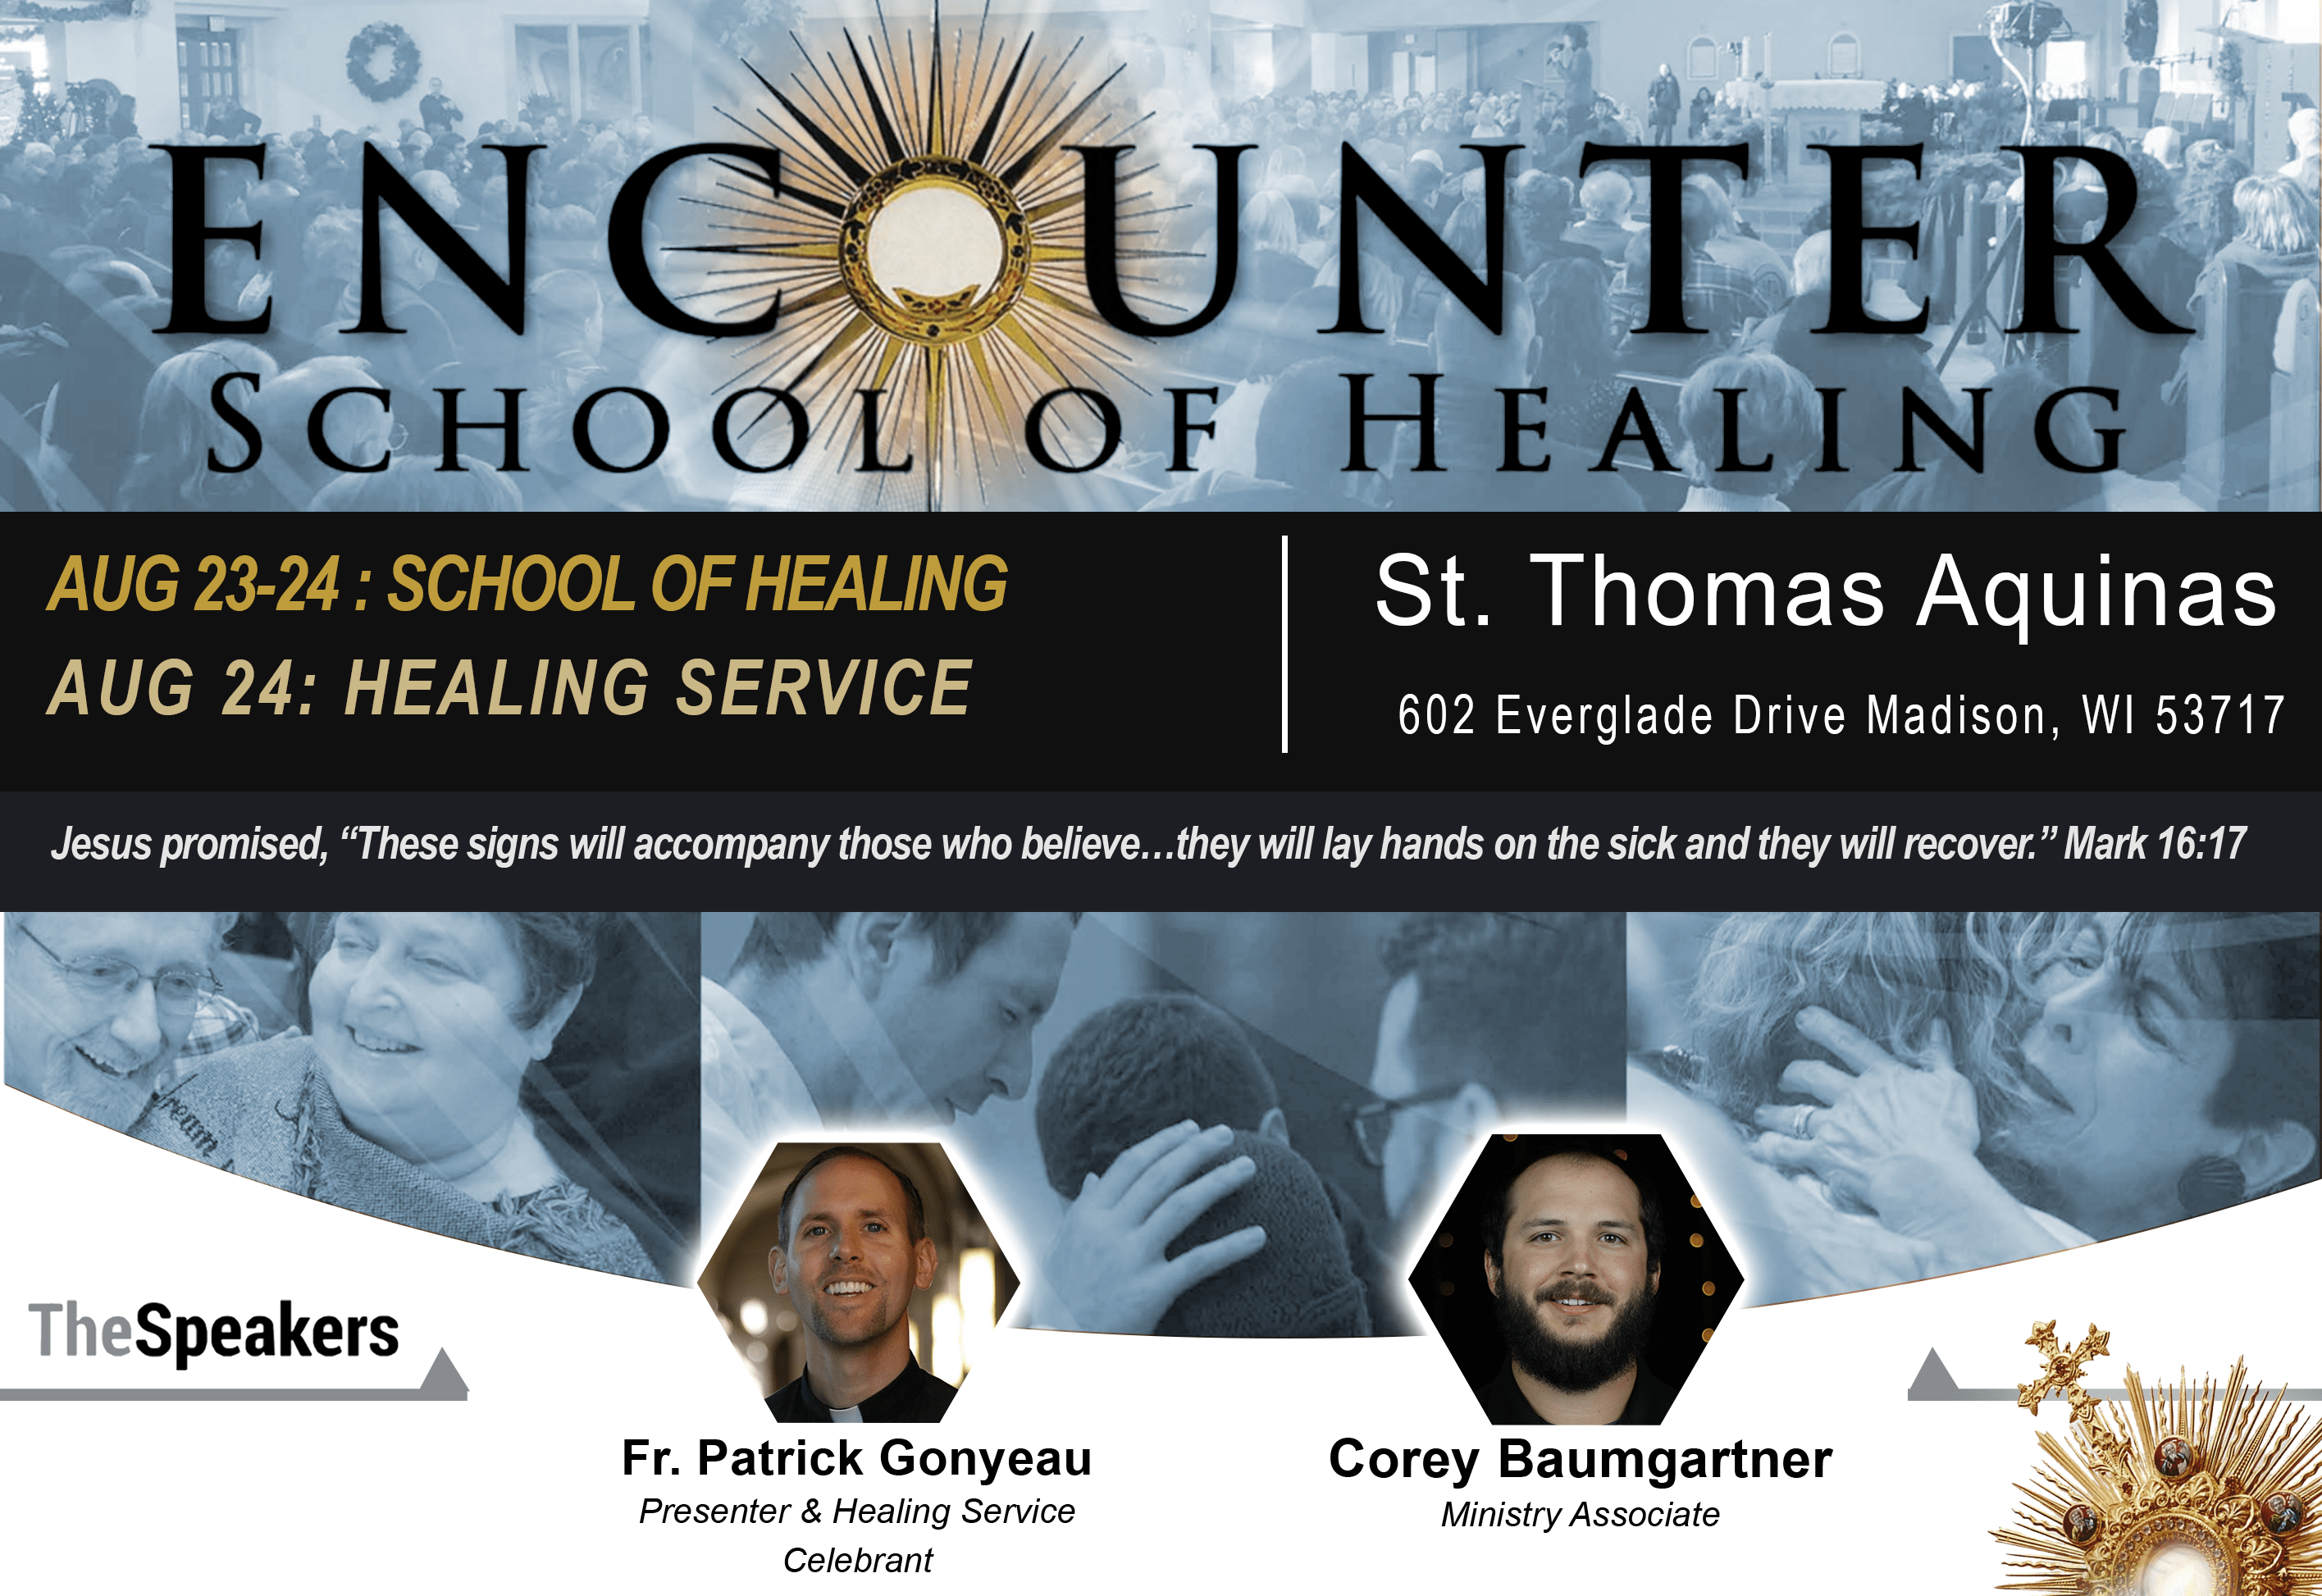 Encounter School of Healing - Encounter Ministries